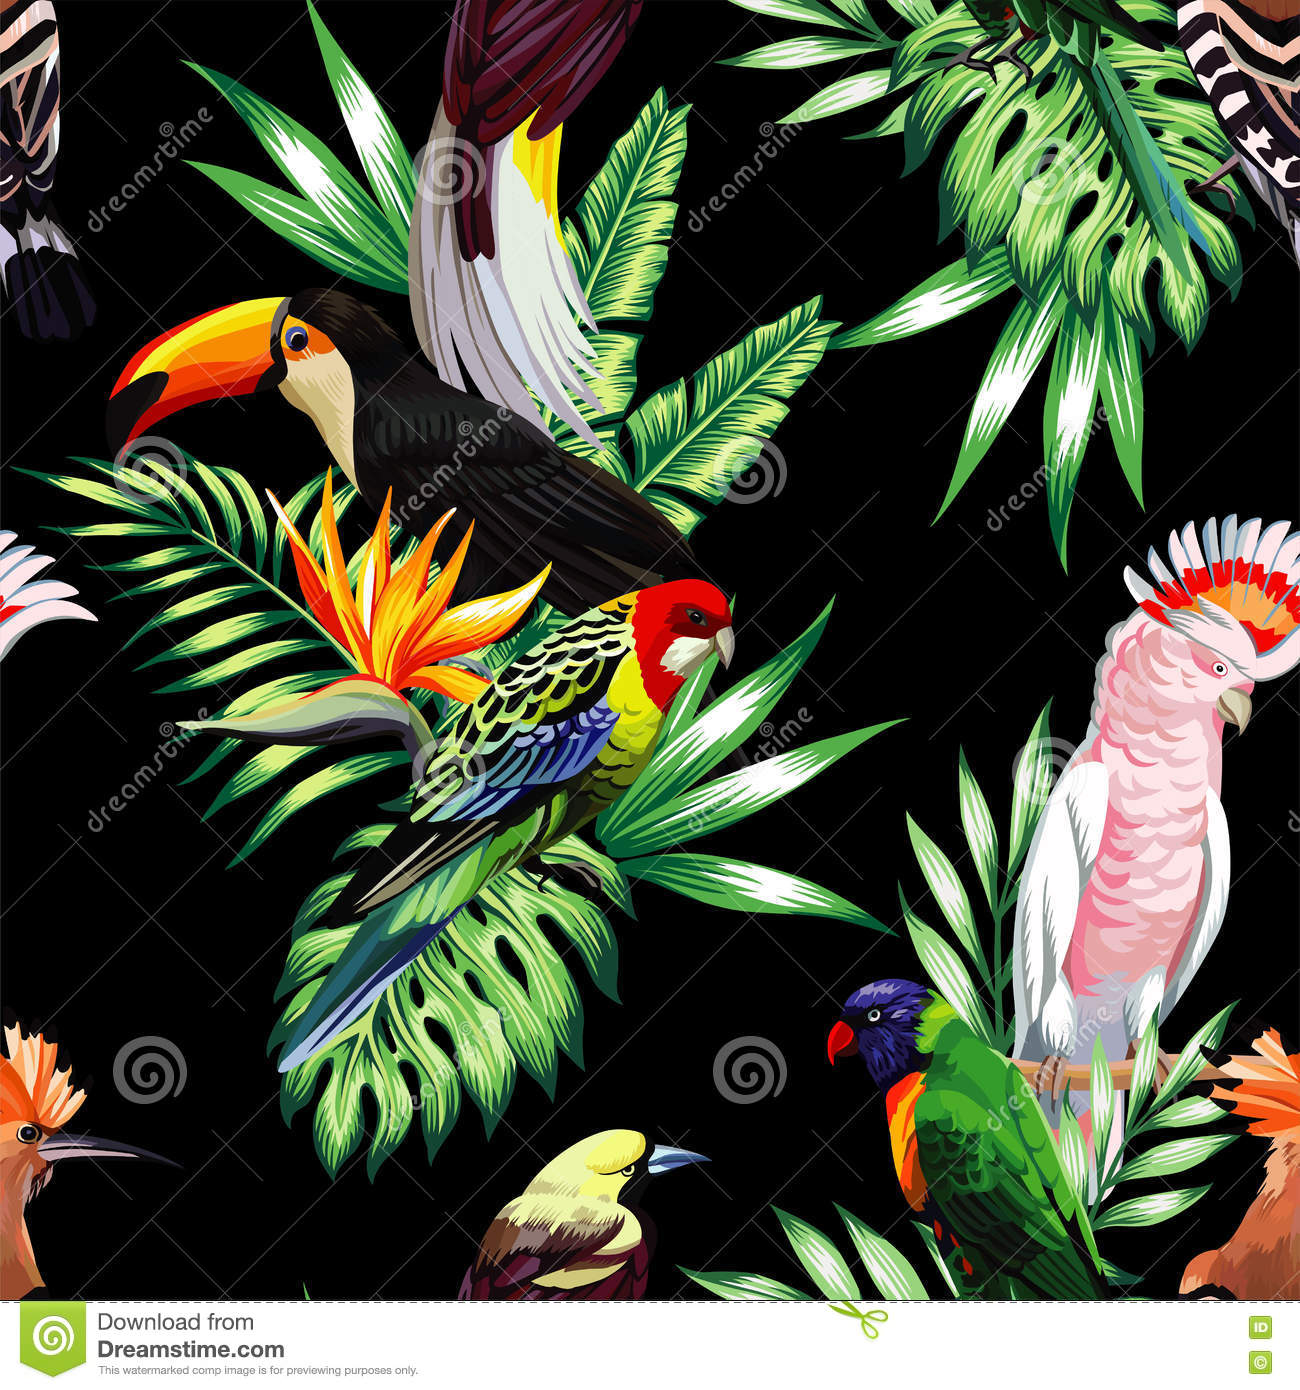 wallpaper tropical birds and foliage - photo #4